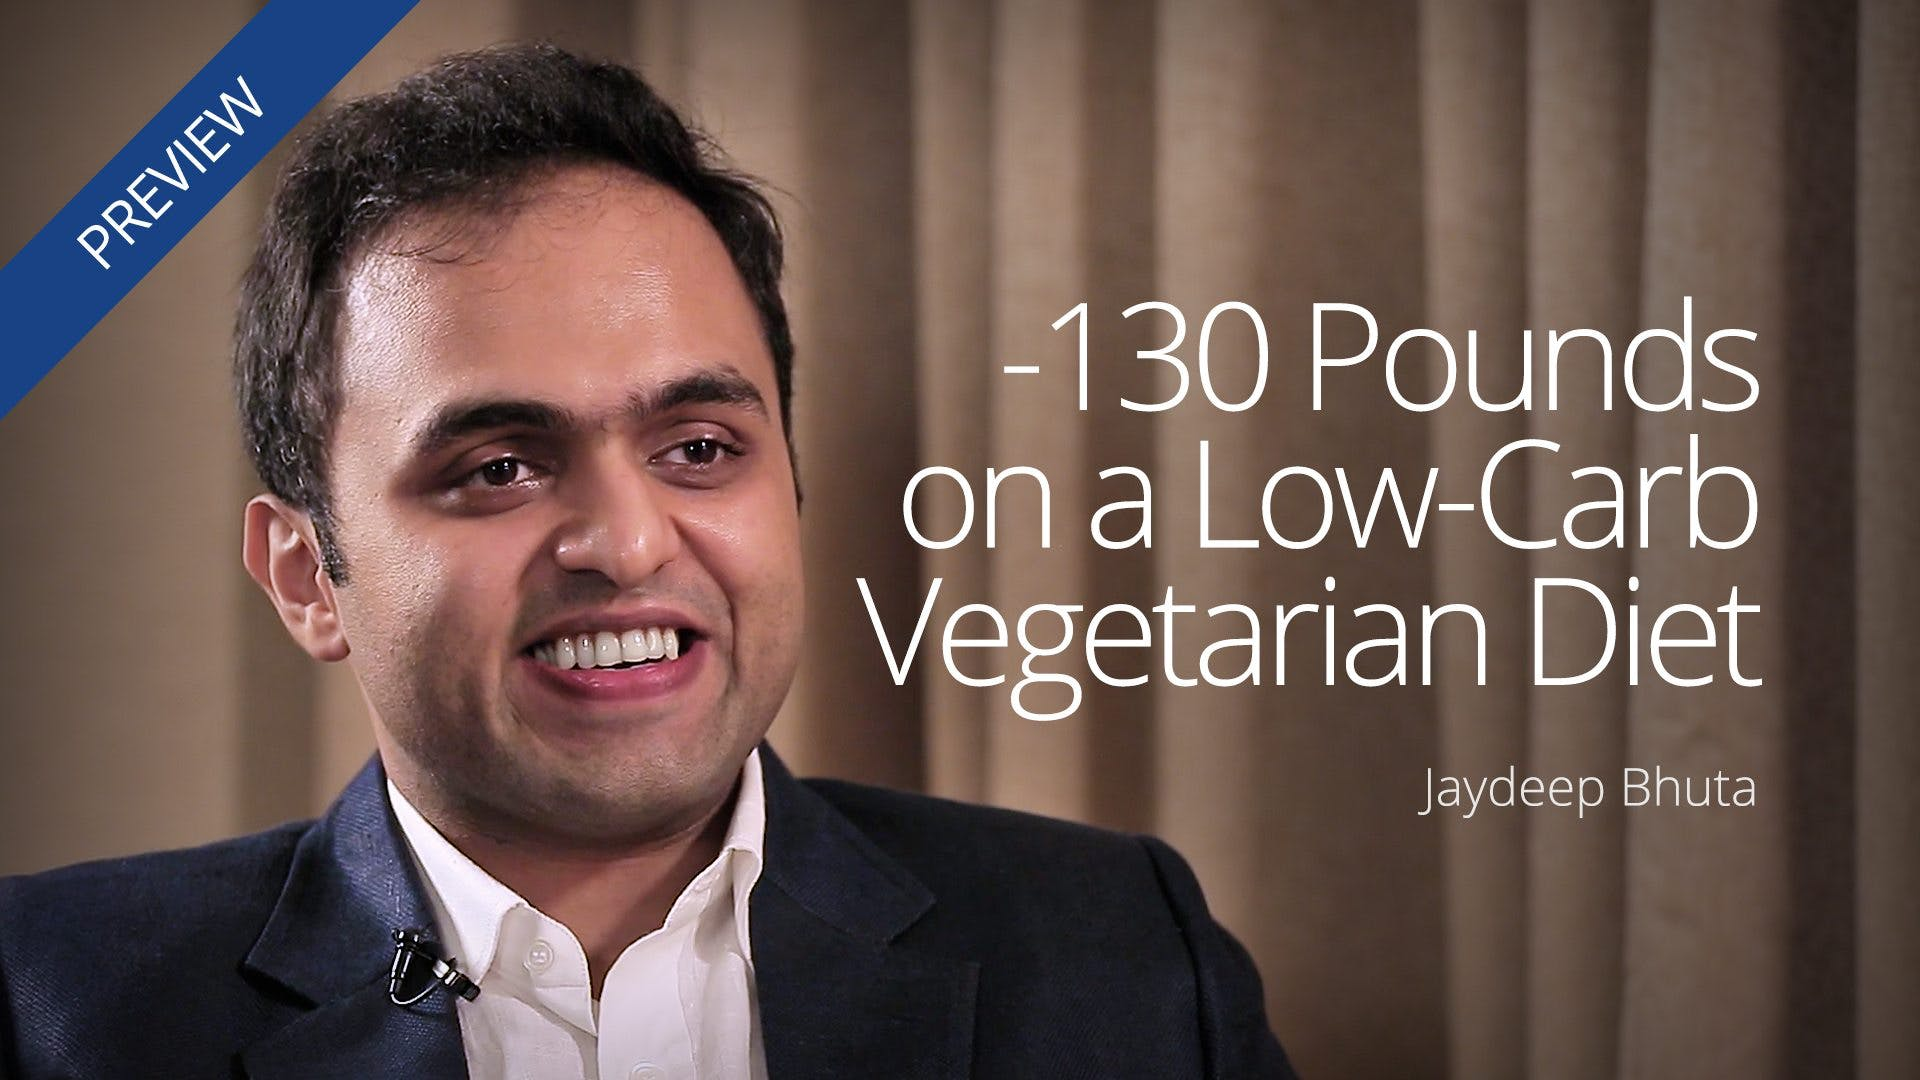 How to Lose 130 Pounds on a Low-Carb Vegetarian Diet